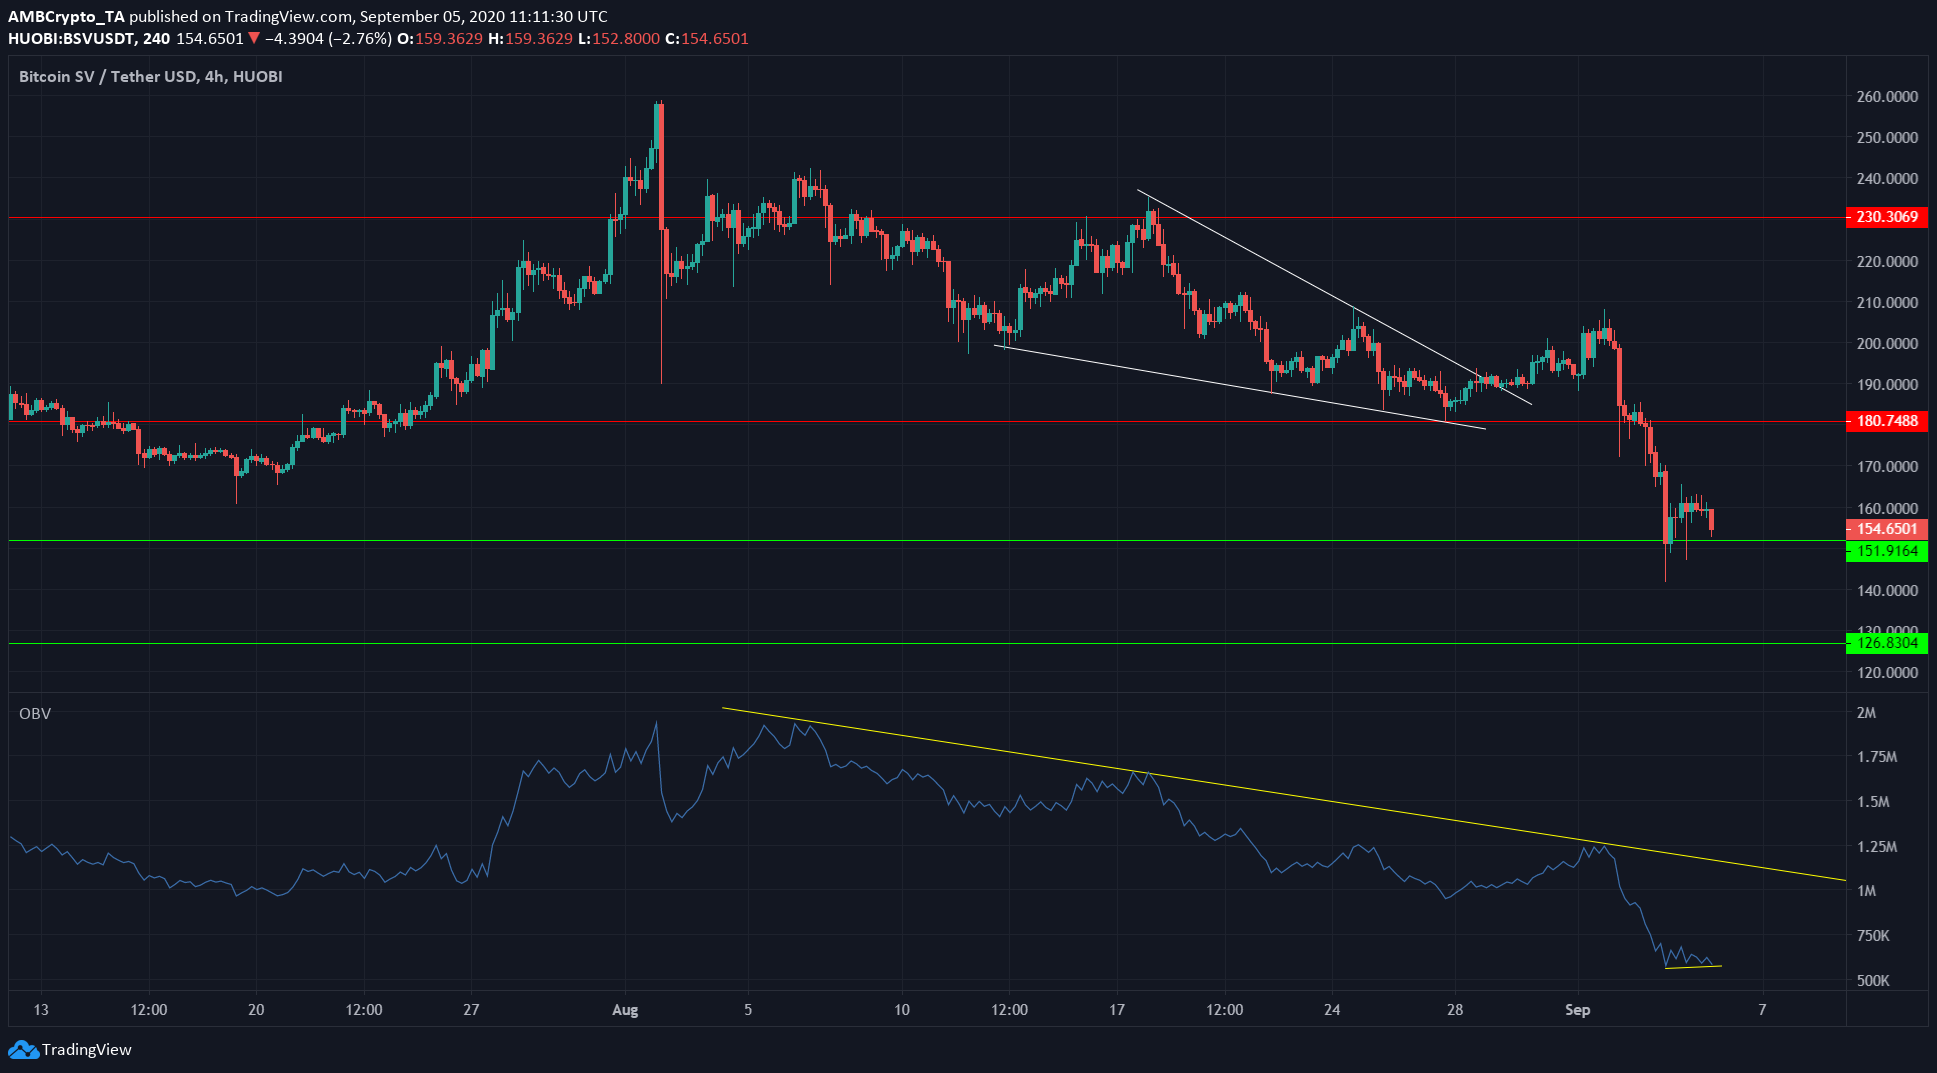 Bitcoin SV, Steem, Compound Price Analysis: 5 September